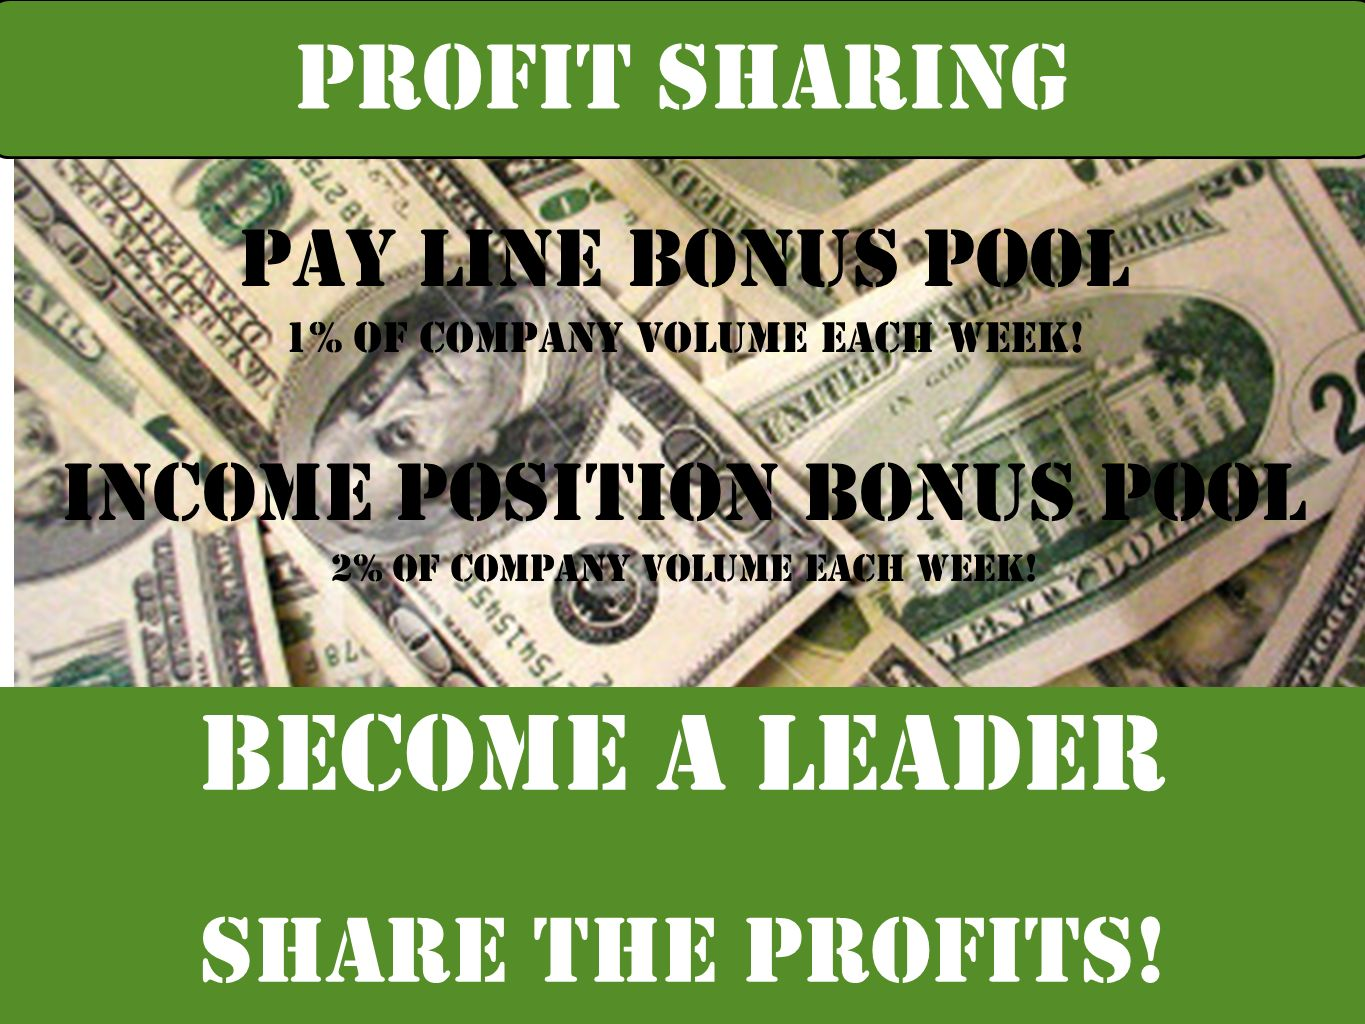 Become a leader PROFIT SHARING share the profits! Pay Line Bonus Pool